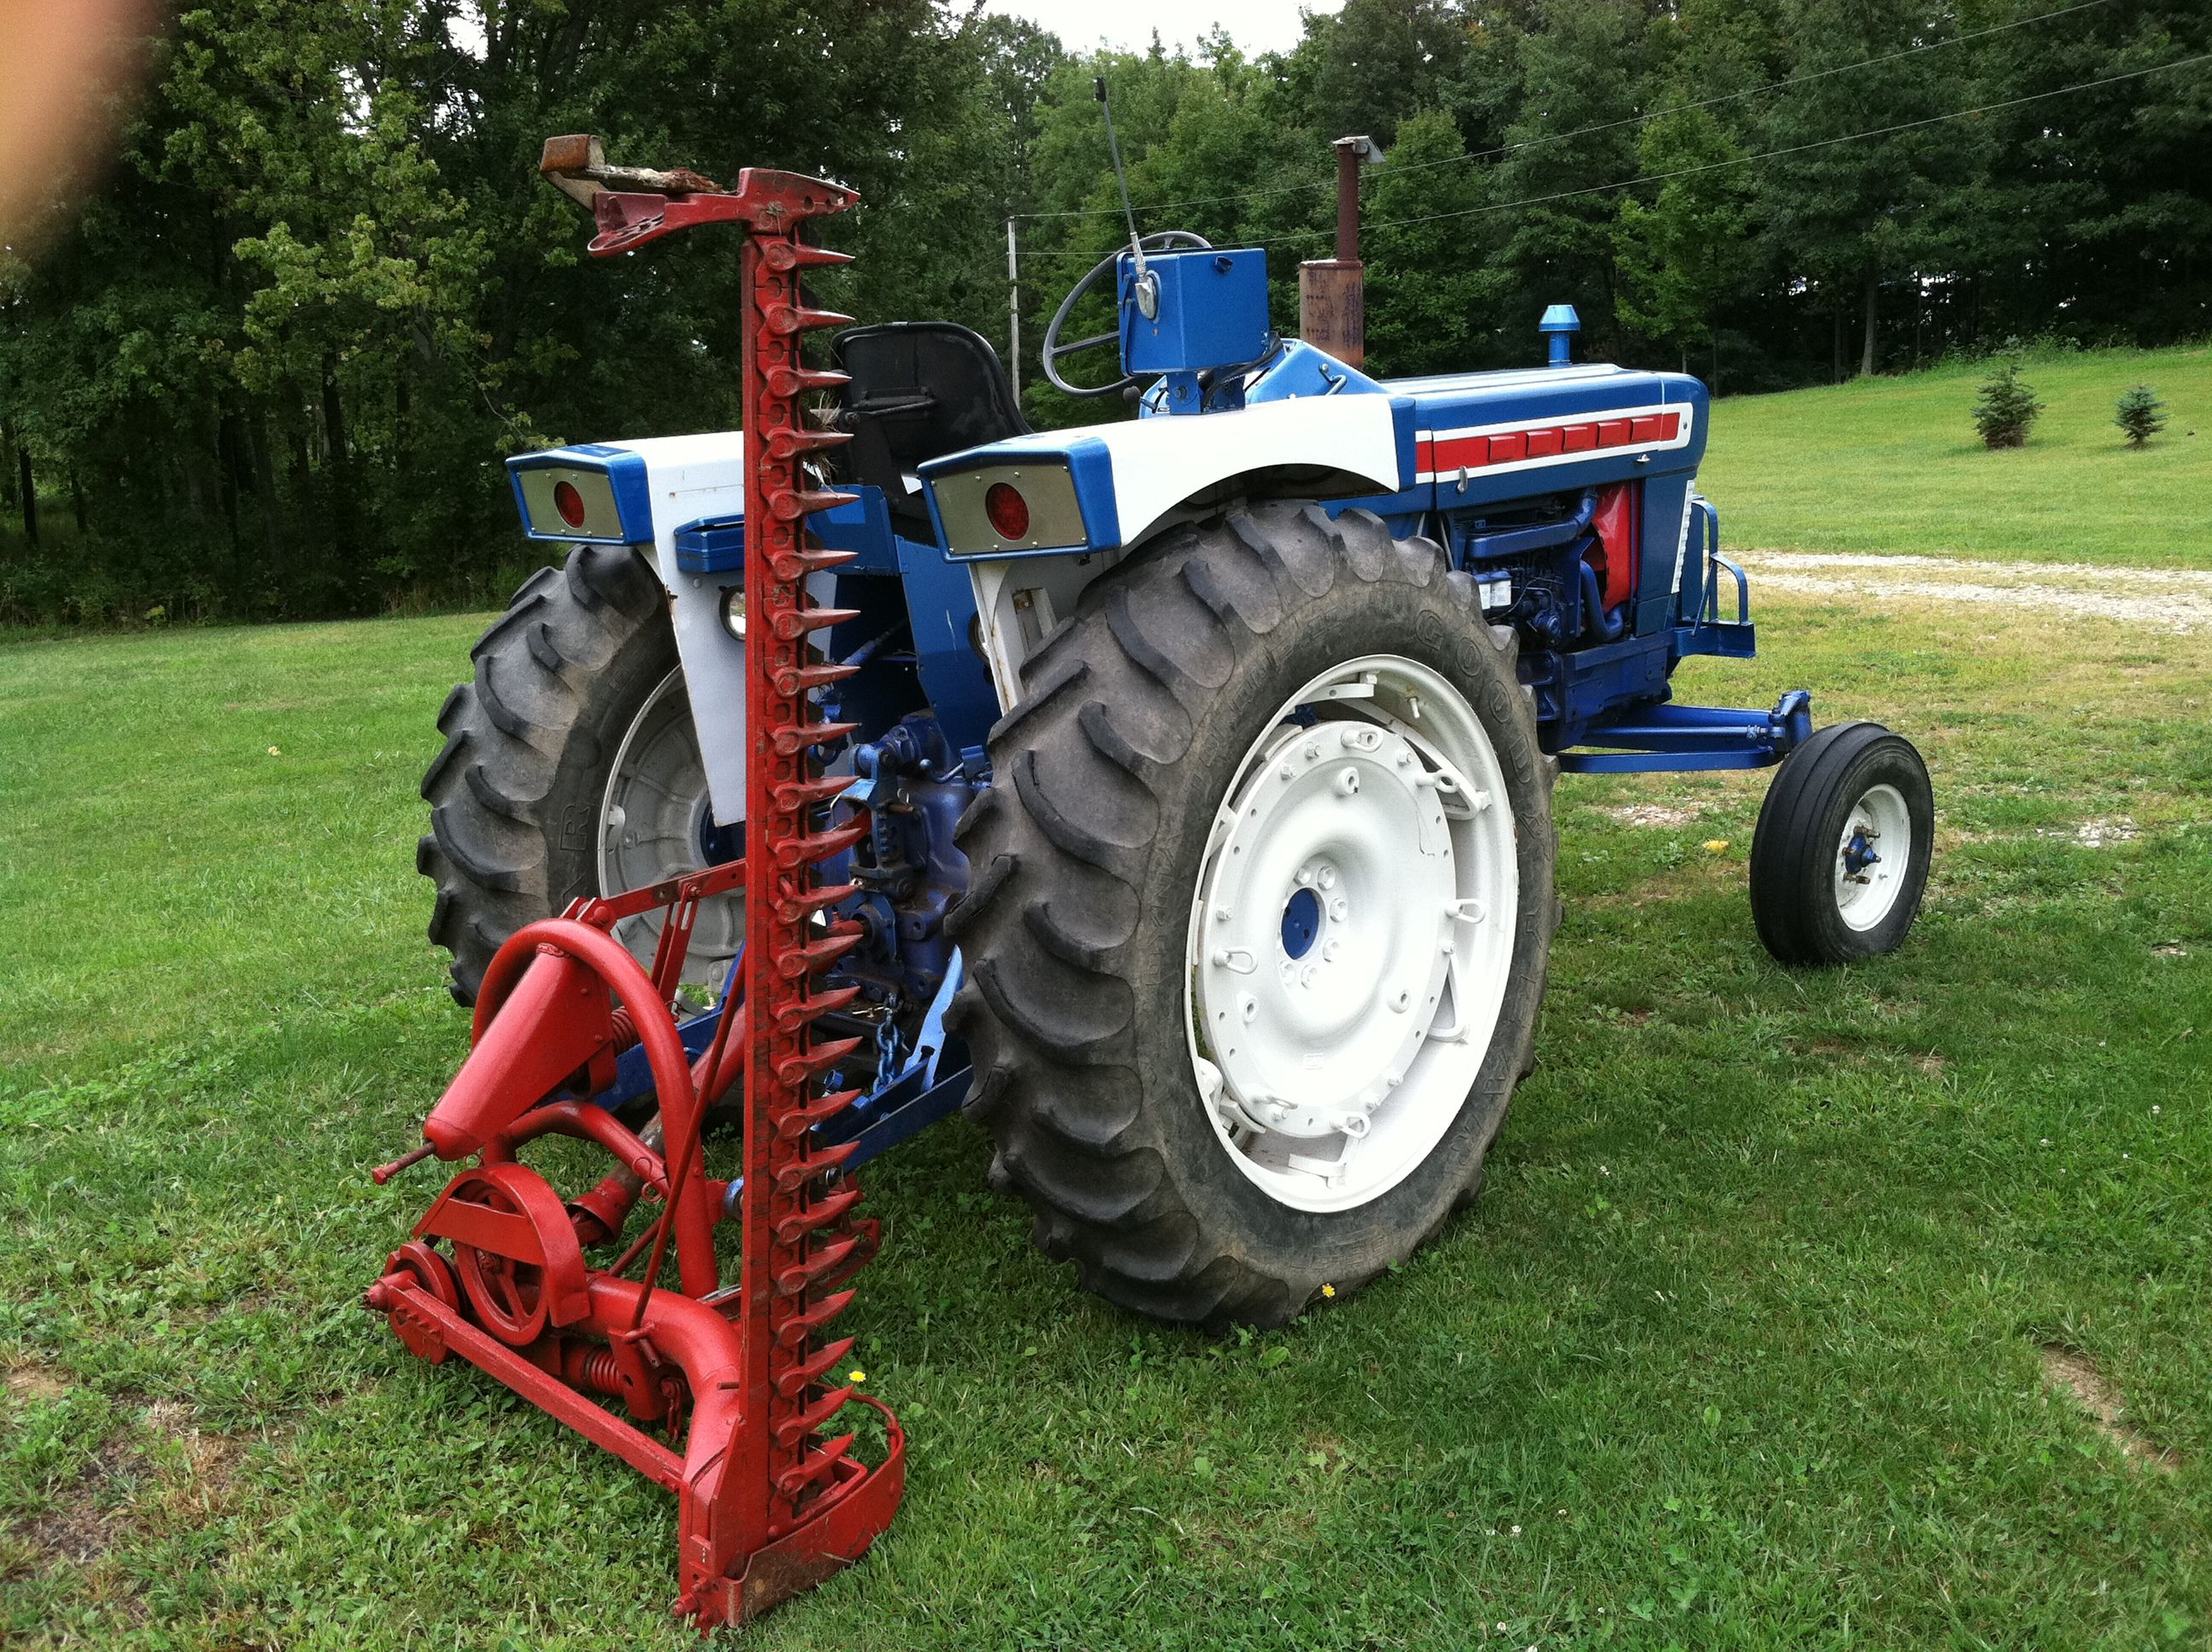 1962 Ford Sickle Bar Mower | Soiled | Ford tractors, Old tractors